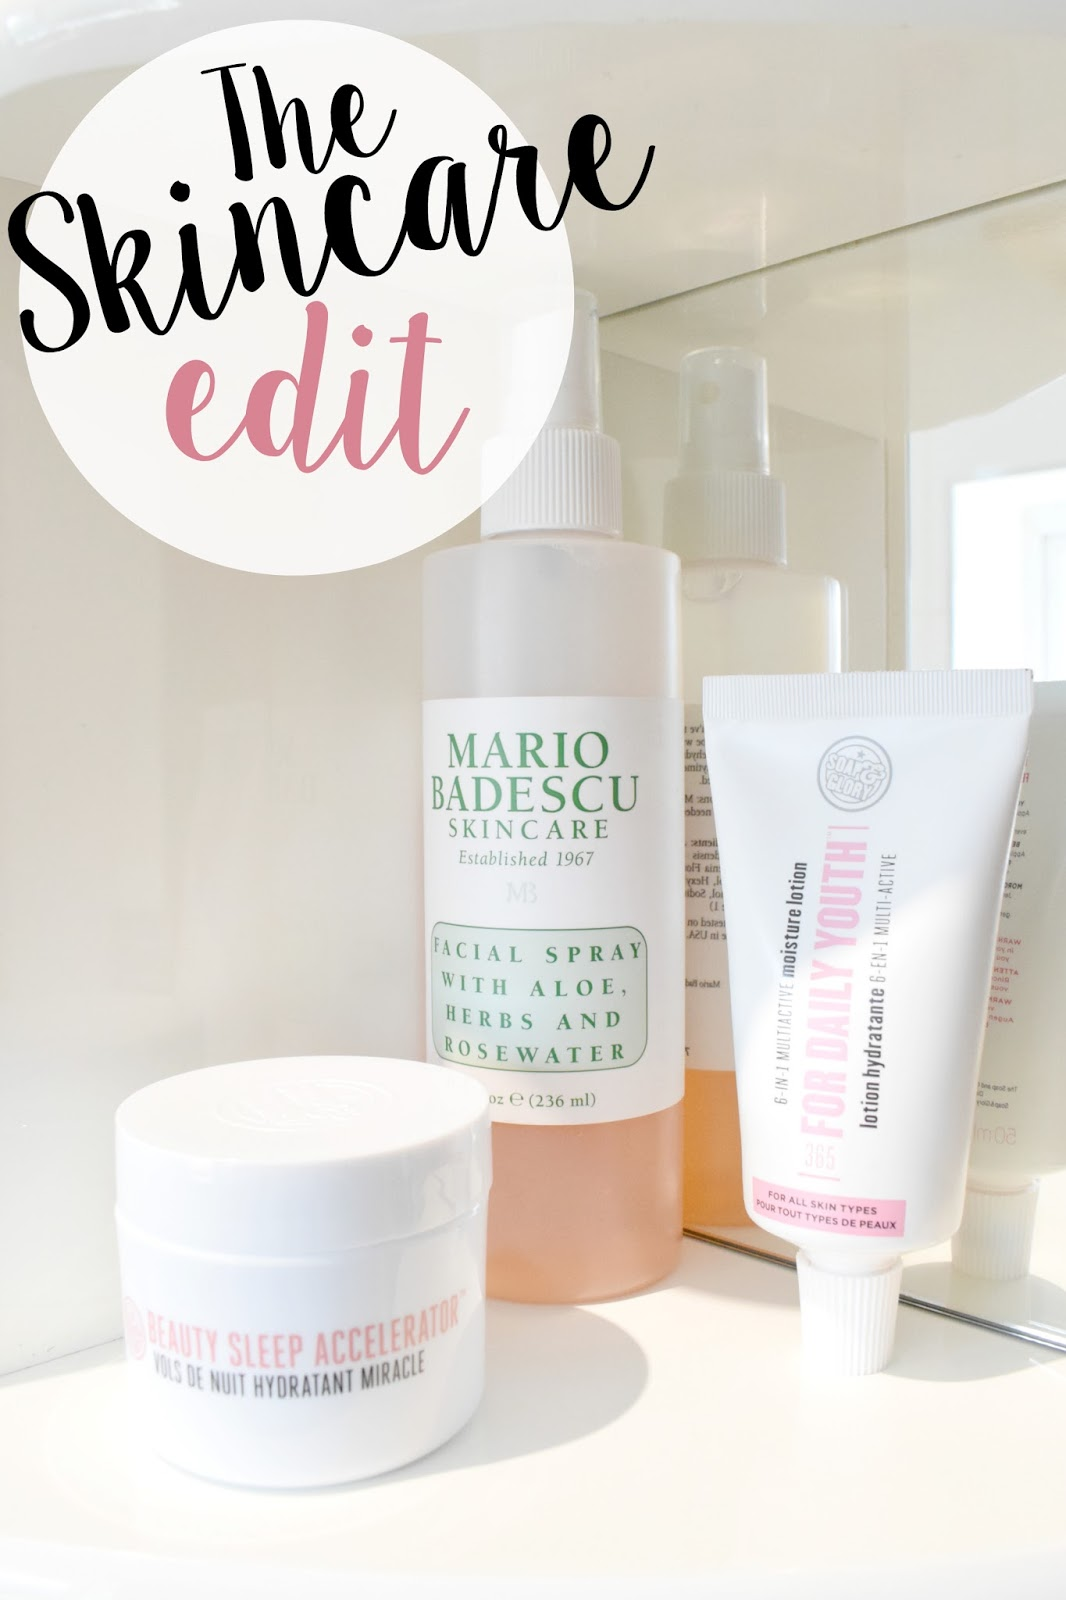 Skincare Edit: Featuring Soap & Glory Daily Youth Moisture Lotion, Soap & Glory Beauty Sleep Accelerator Cream and Mario Badescu Rosewater Spray